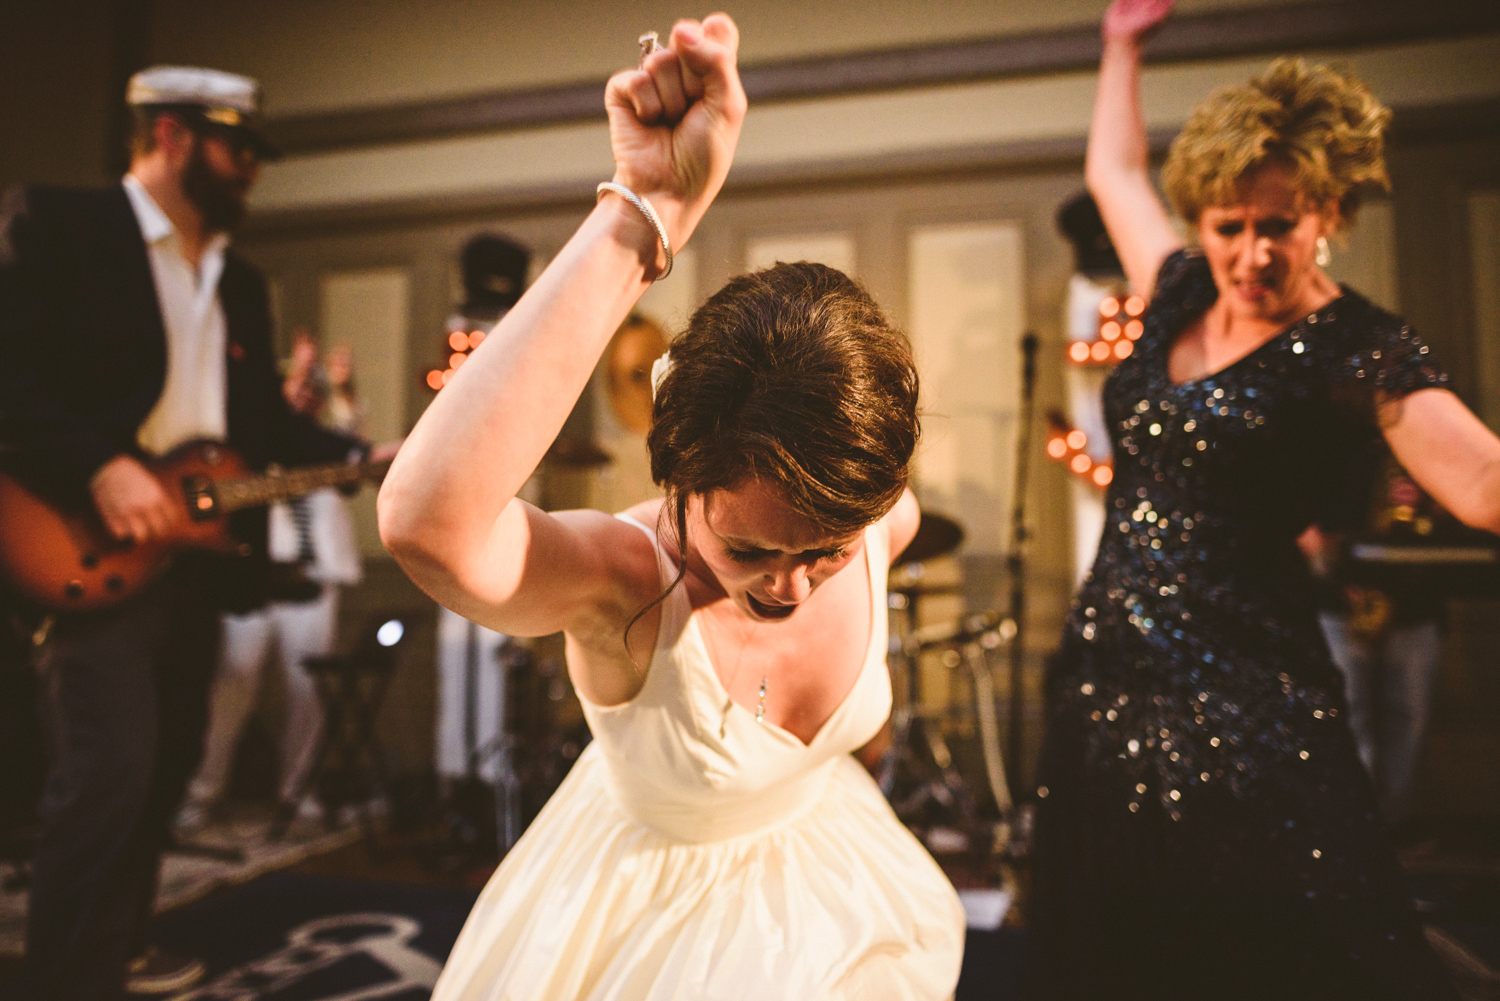 029 - bride dancing on stage with three sheets to the wind wedding band - richmond wedding photographer nathan mitchell.jpg